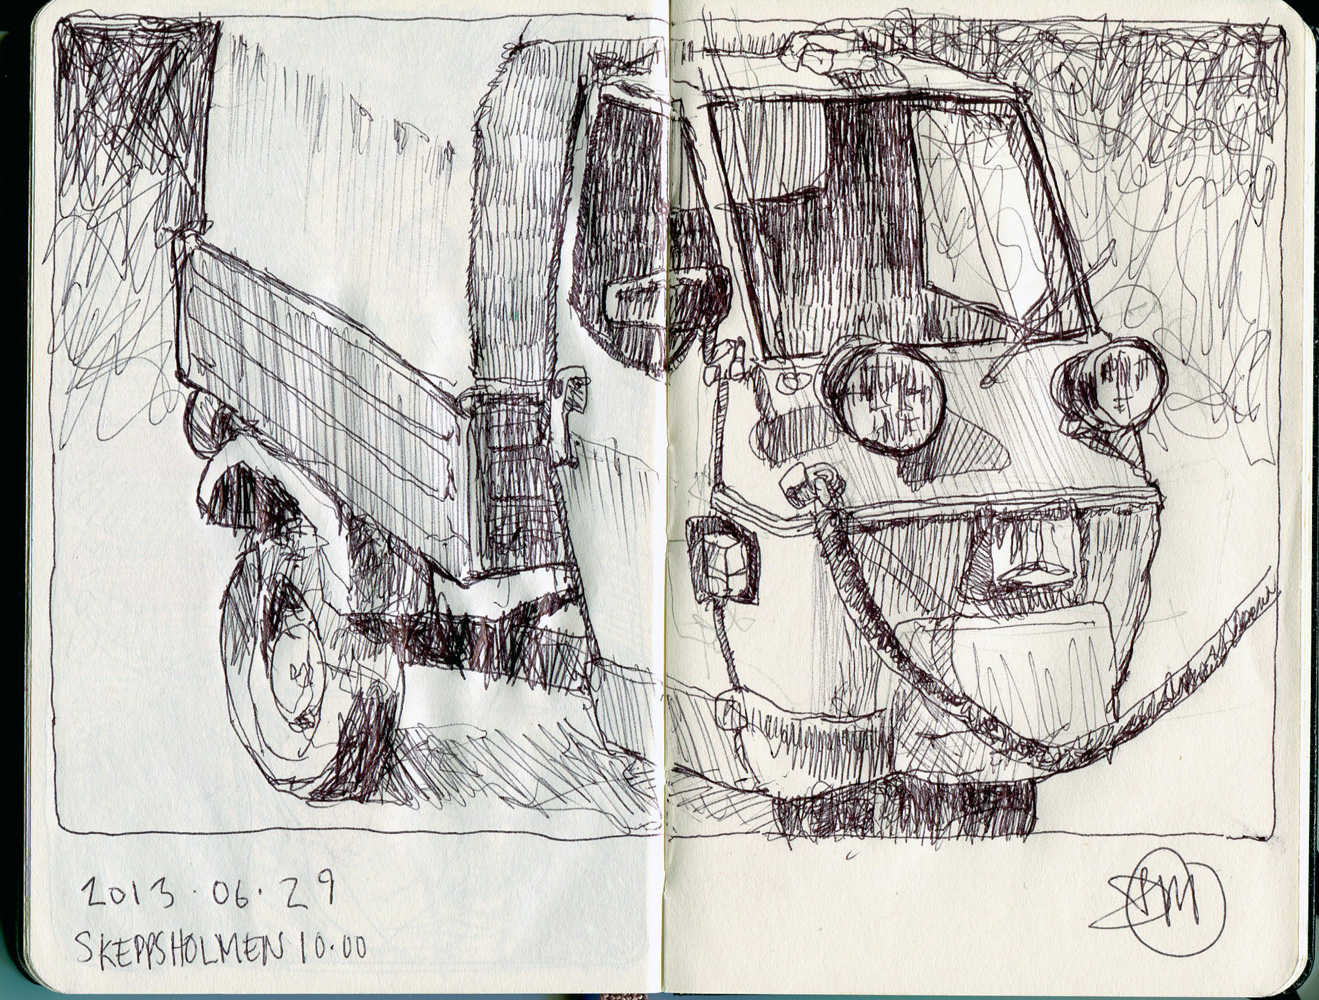 Sketch of 3 wheel van by David Meldrum, 20130629